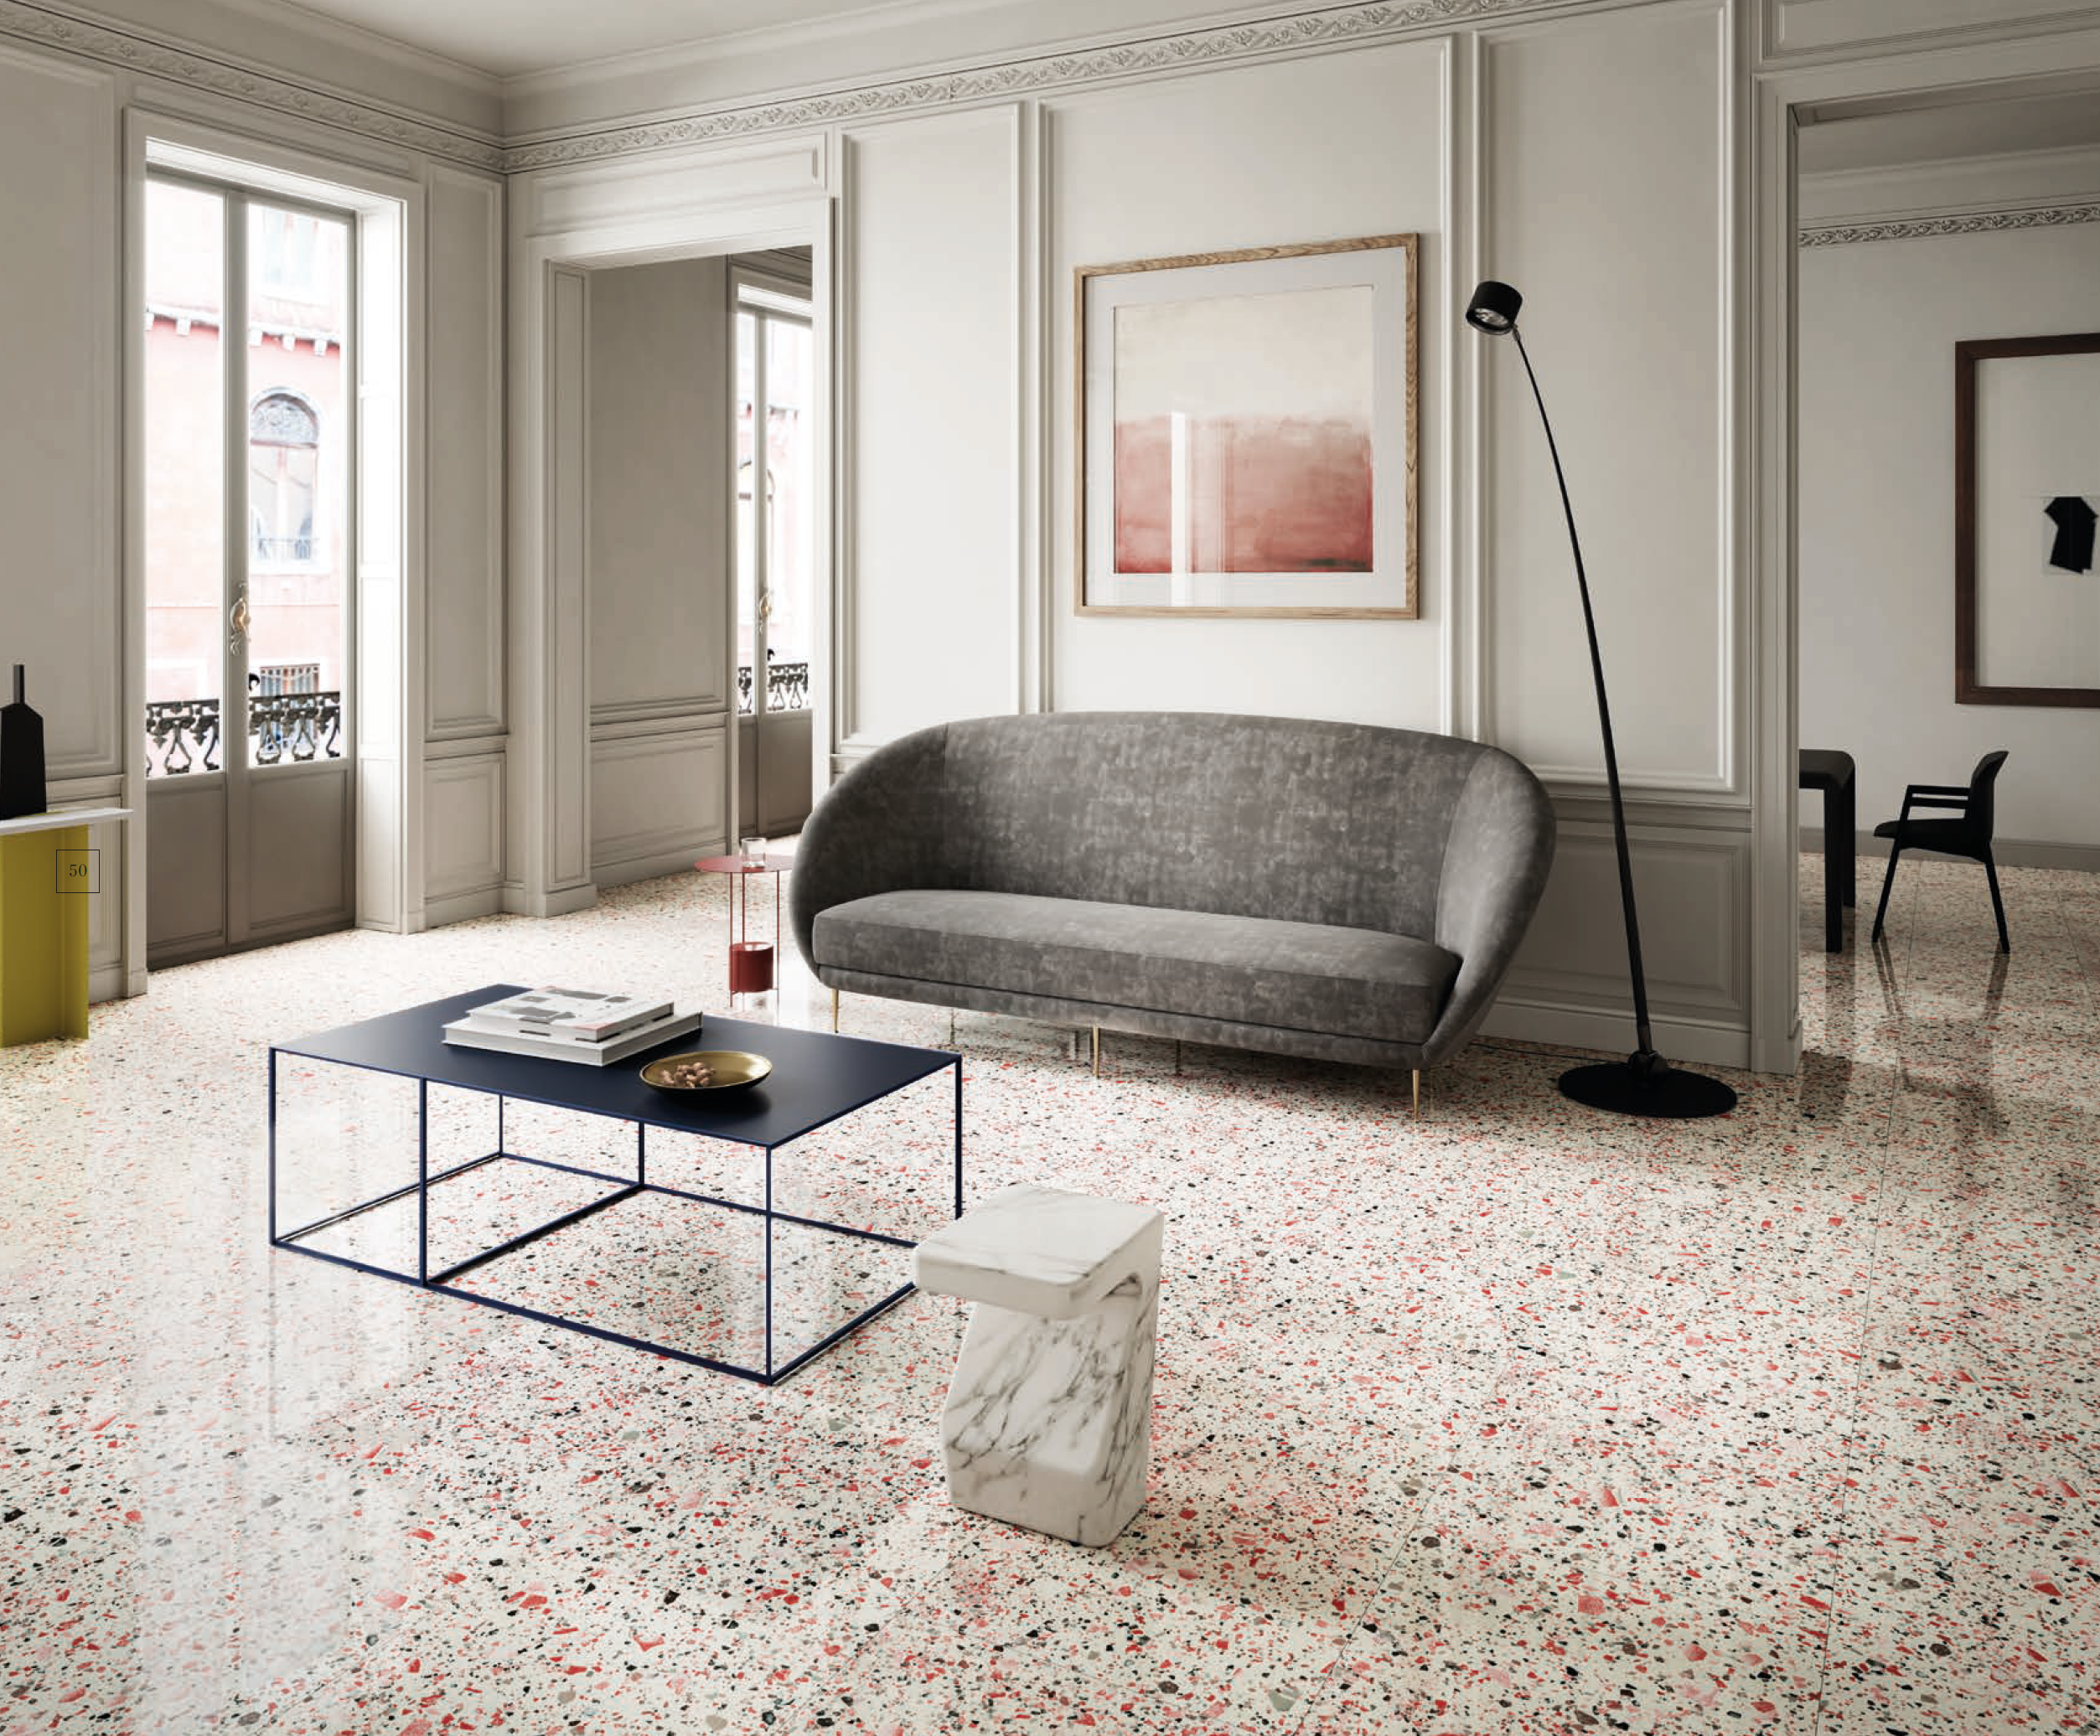 VT.457 White & Red Terrazzo Look Tile from Eco Friendly